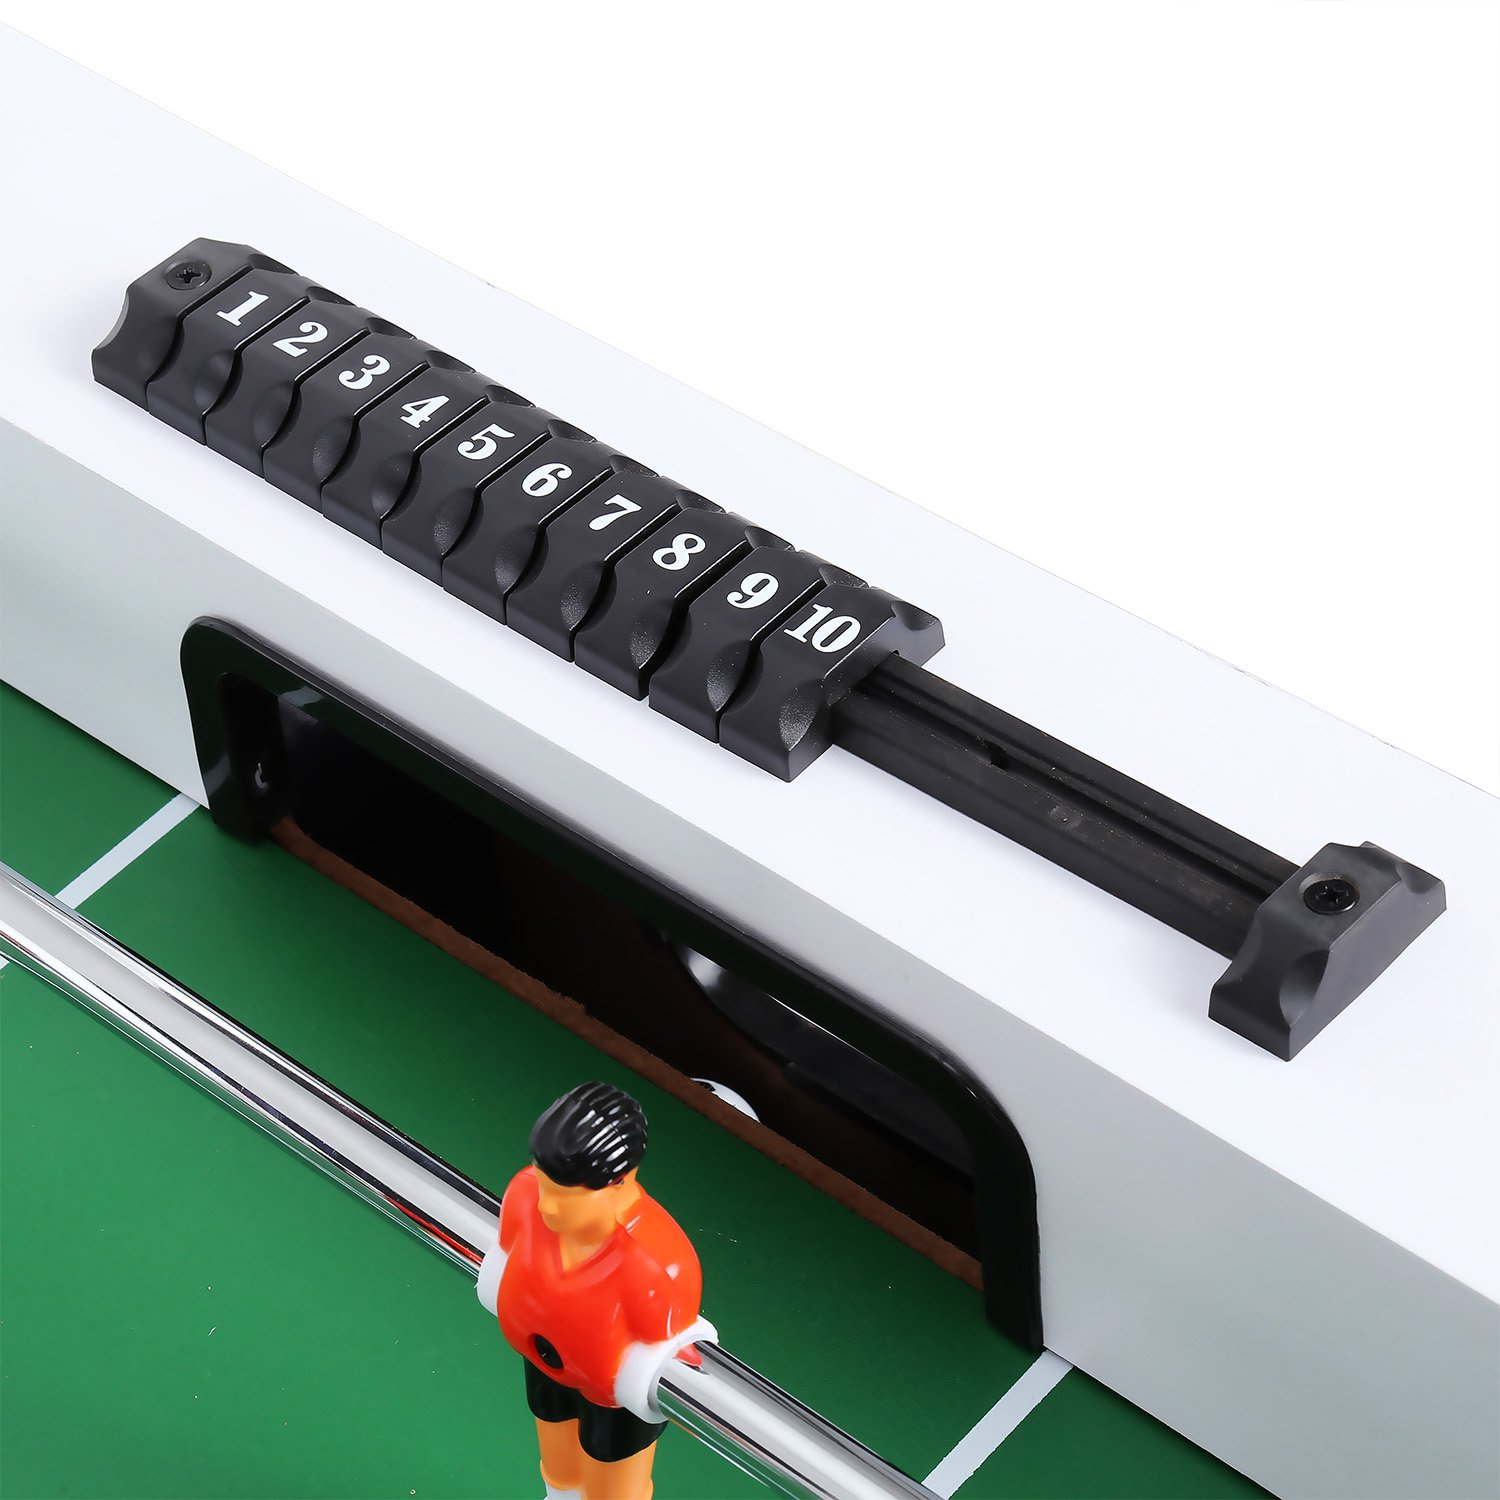 ANCHEER 48'' Foosball Table Soccer Table Arcade Game Room Football Table Sports Game for Kids& Adults- Indoor&Outdoor by ANCHEER (Image #7)